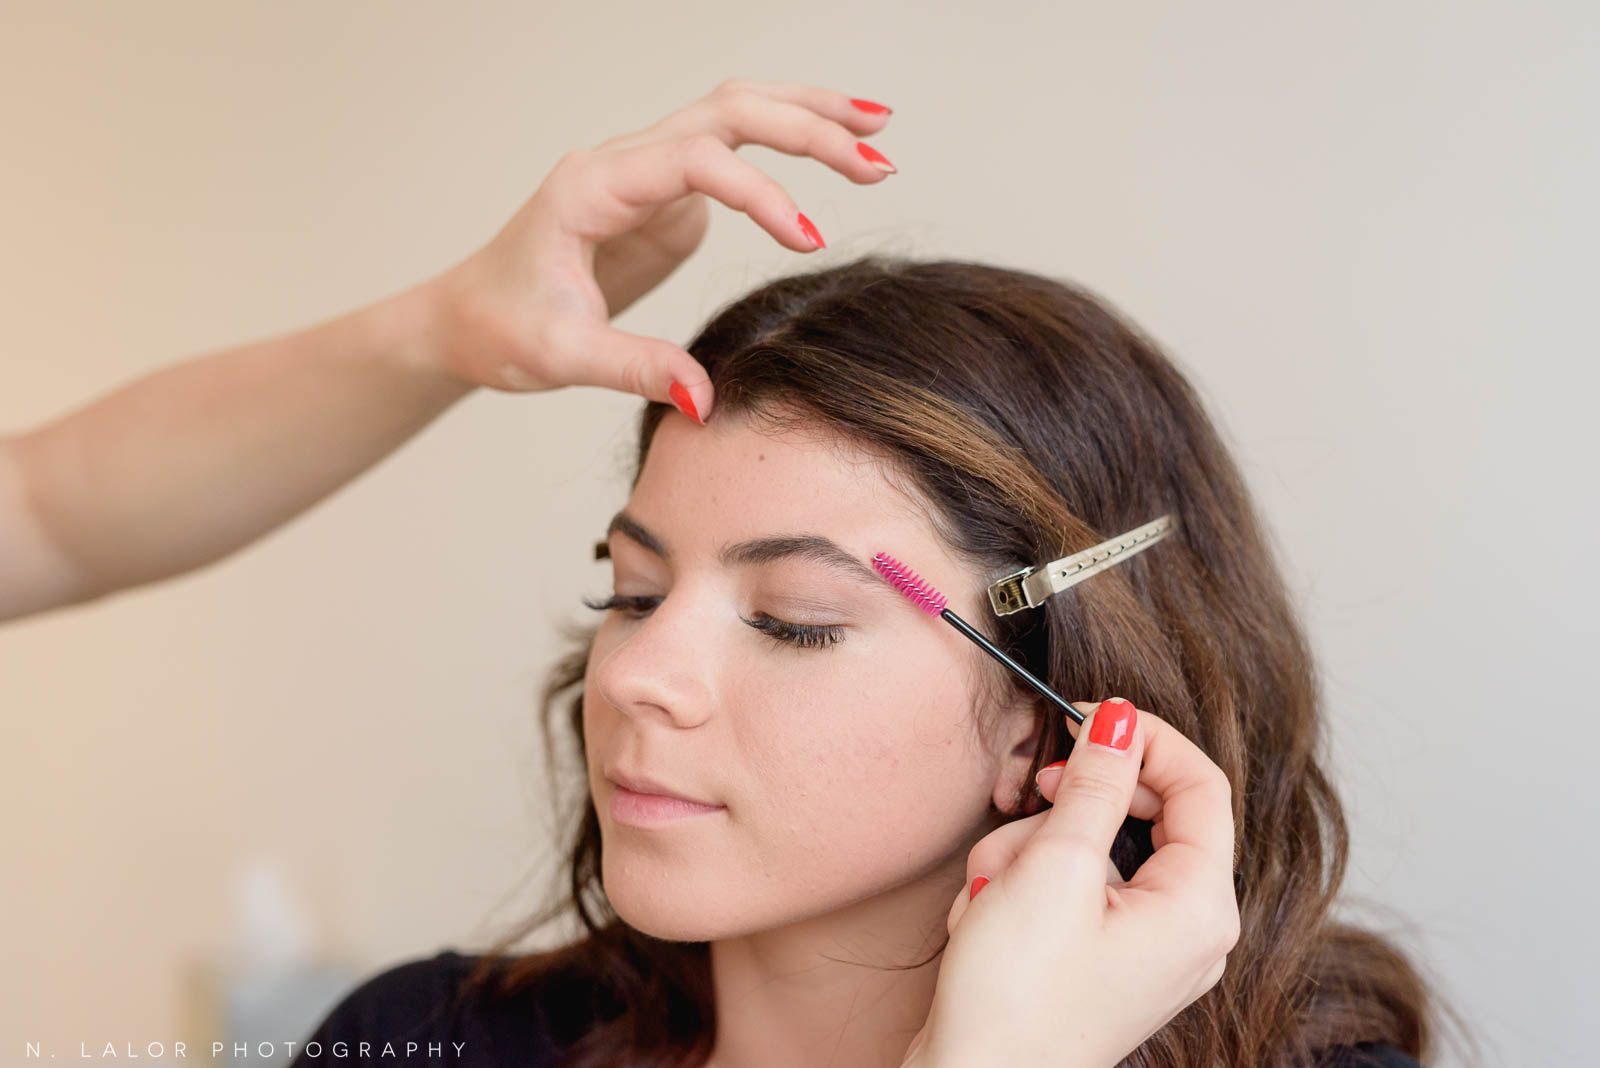 Brushing eyebrows, makeup tutorial for photoshoots. Photo by N. Lalor Photography, makeup tips by Haus of Pretty of Westport CT.